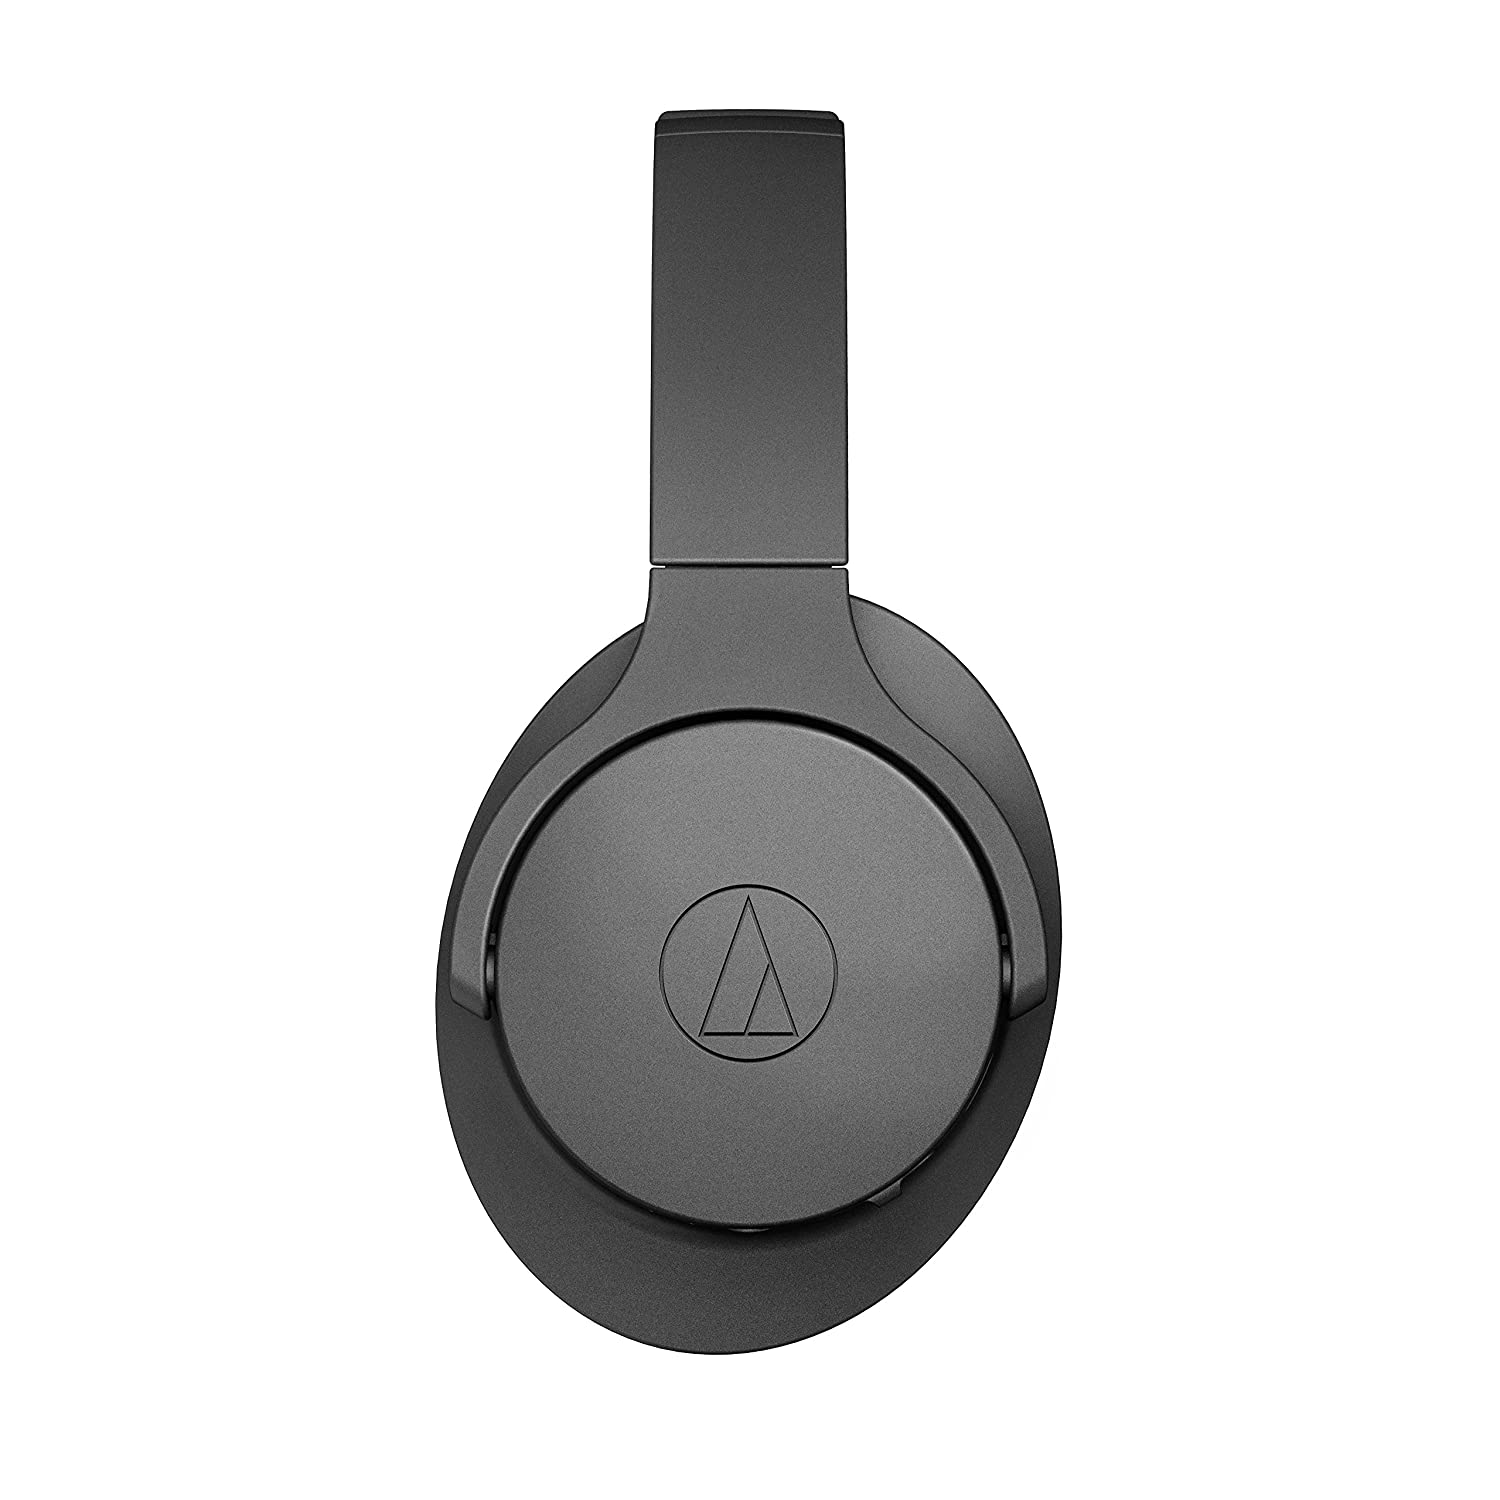 Audio-Technica Ath-Anc700Bt BK Over Auriculares, Bluetooth, Negro: Amazon.es: Electrónica